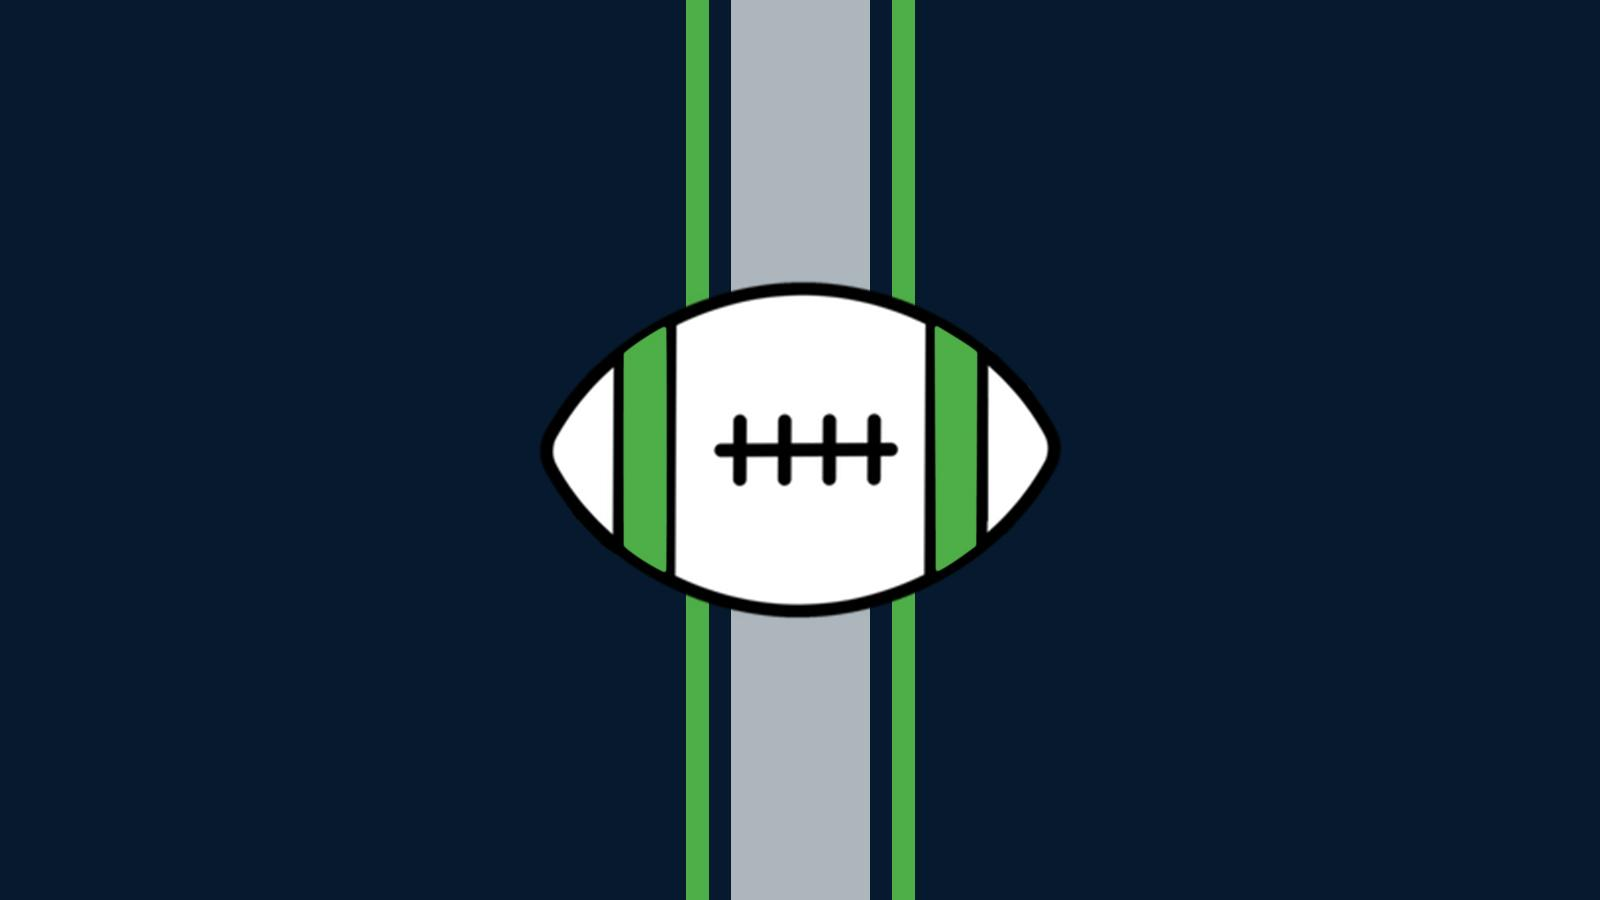 NFC Championship Game - TBD at Seattle Seahawks (Date TBD) (If Necessary)